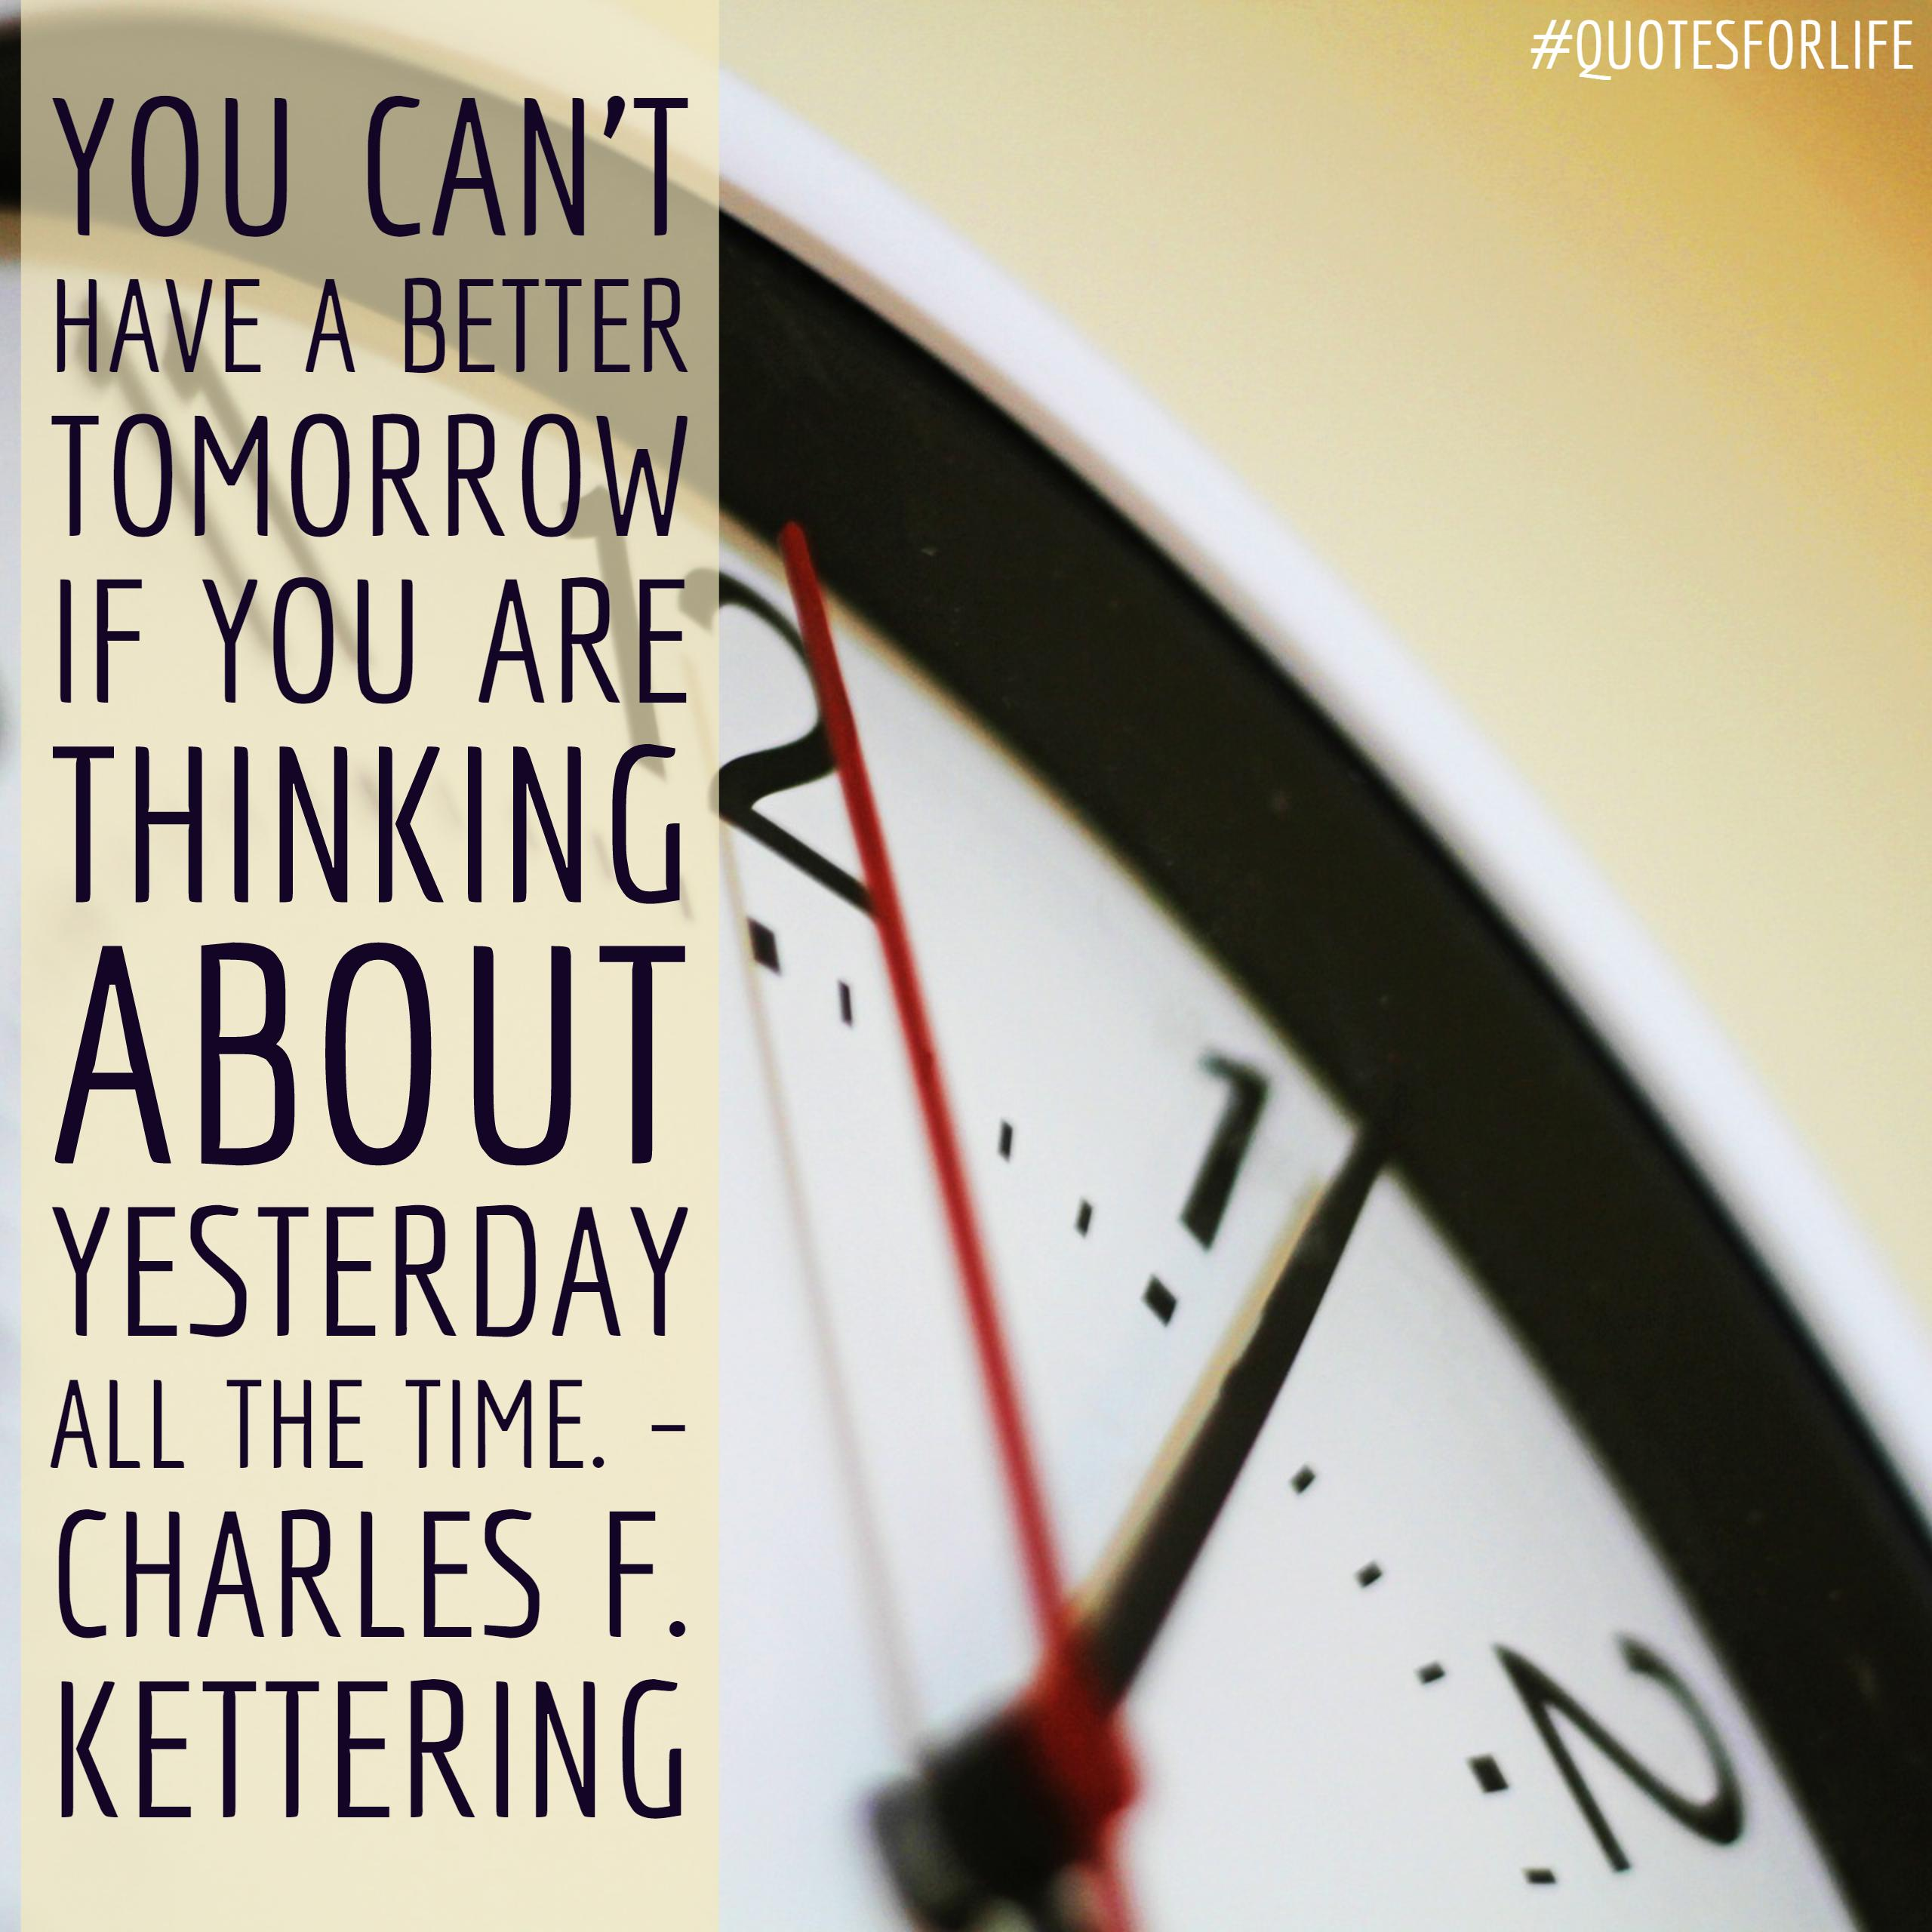 Charles F Kettering